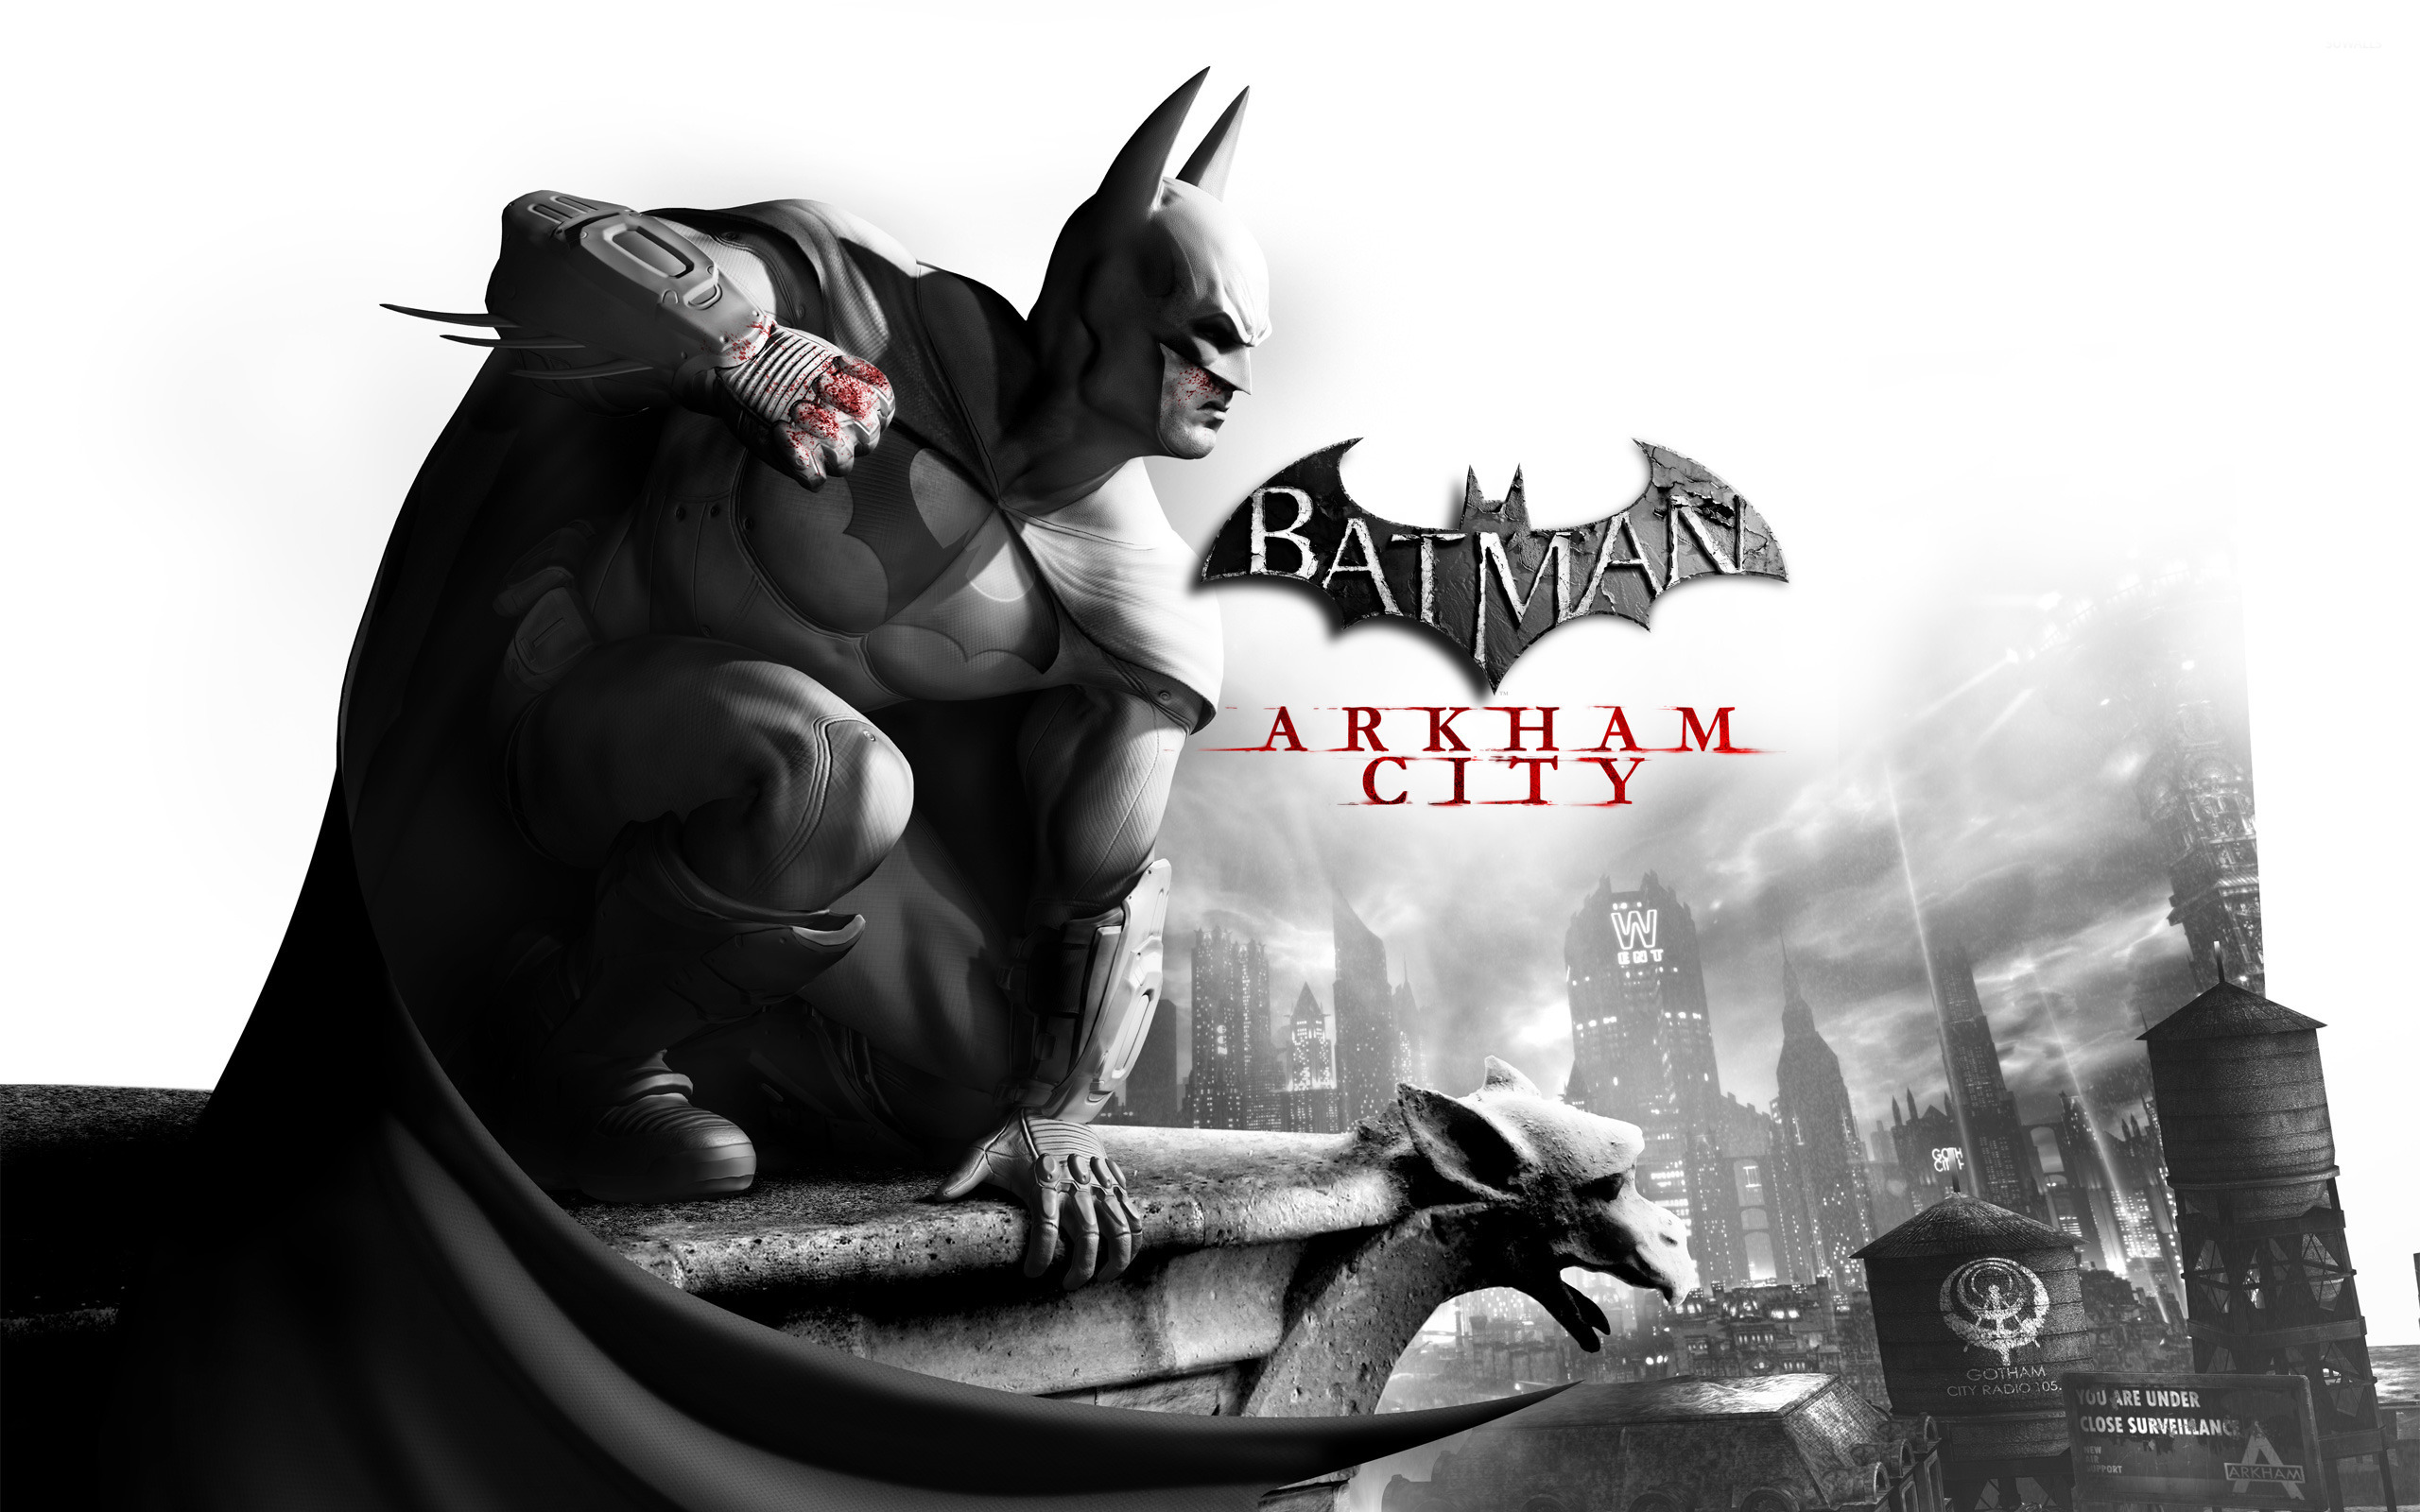 Batman Arkham City wallpaper   Game wallpapers   11422 2560x1600